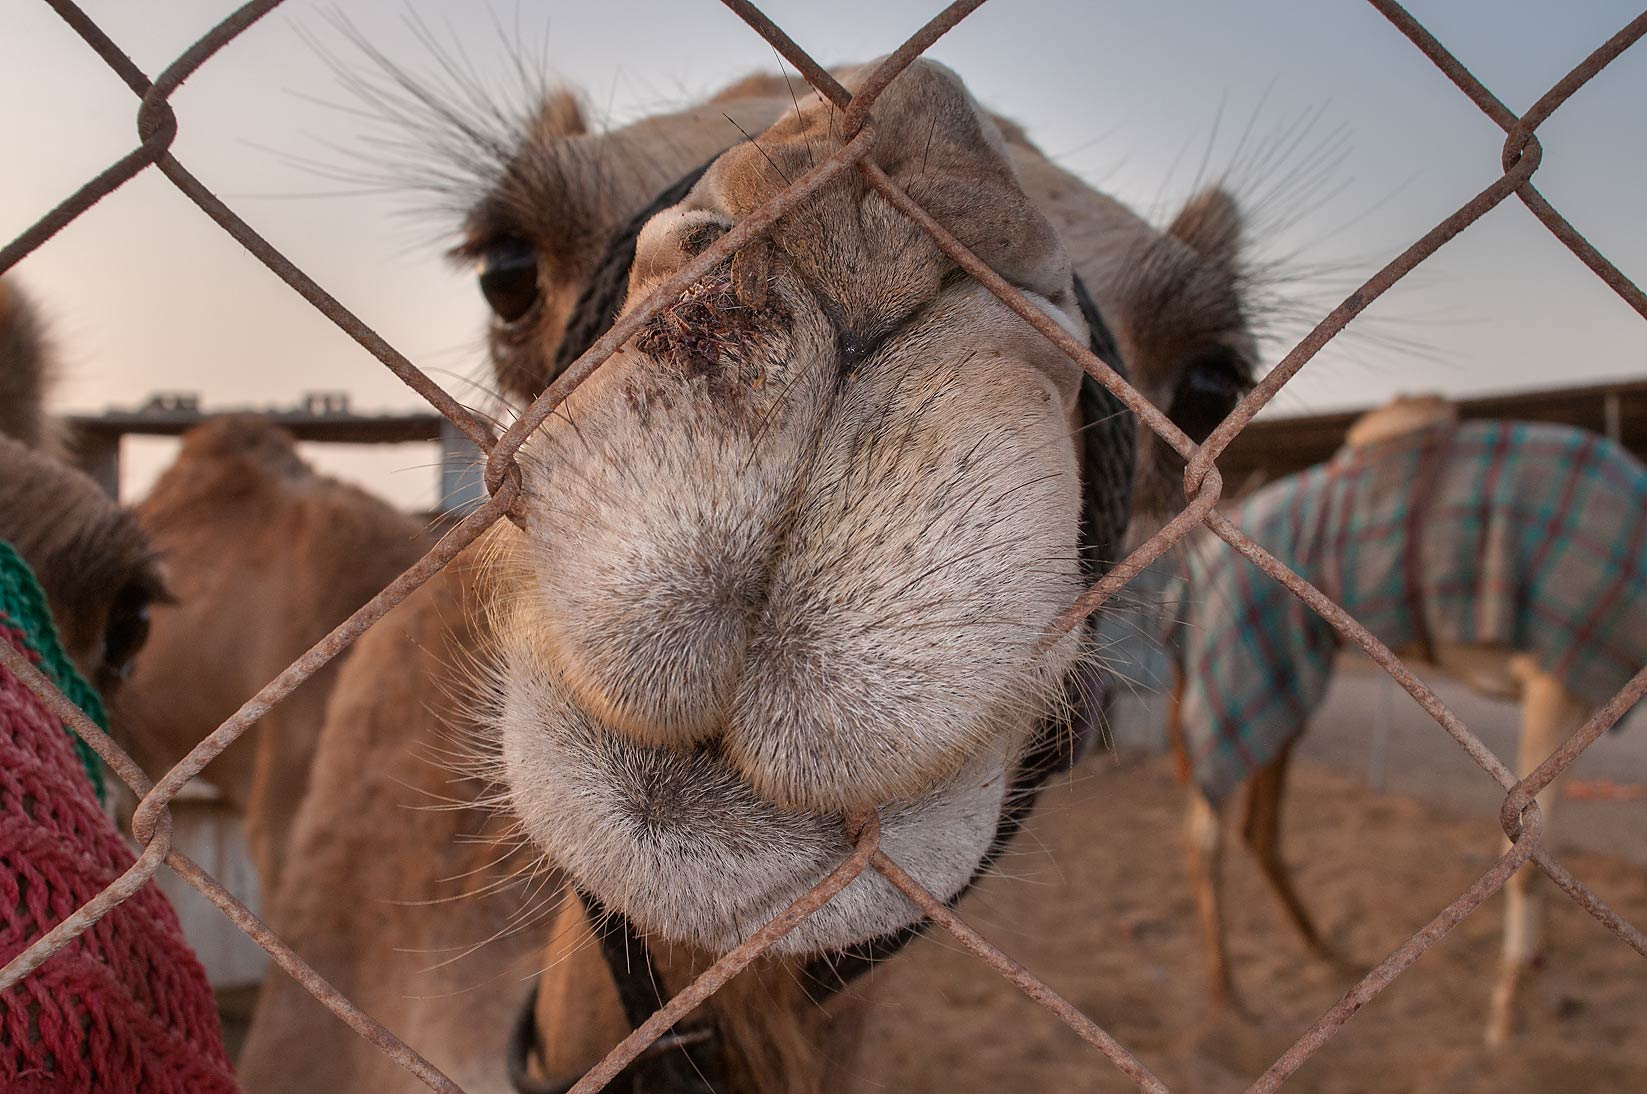 Camel gnawing a fence in Livestock Market, Abu Hamour area. Doha, Qatar